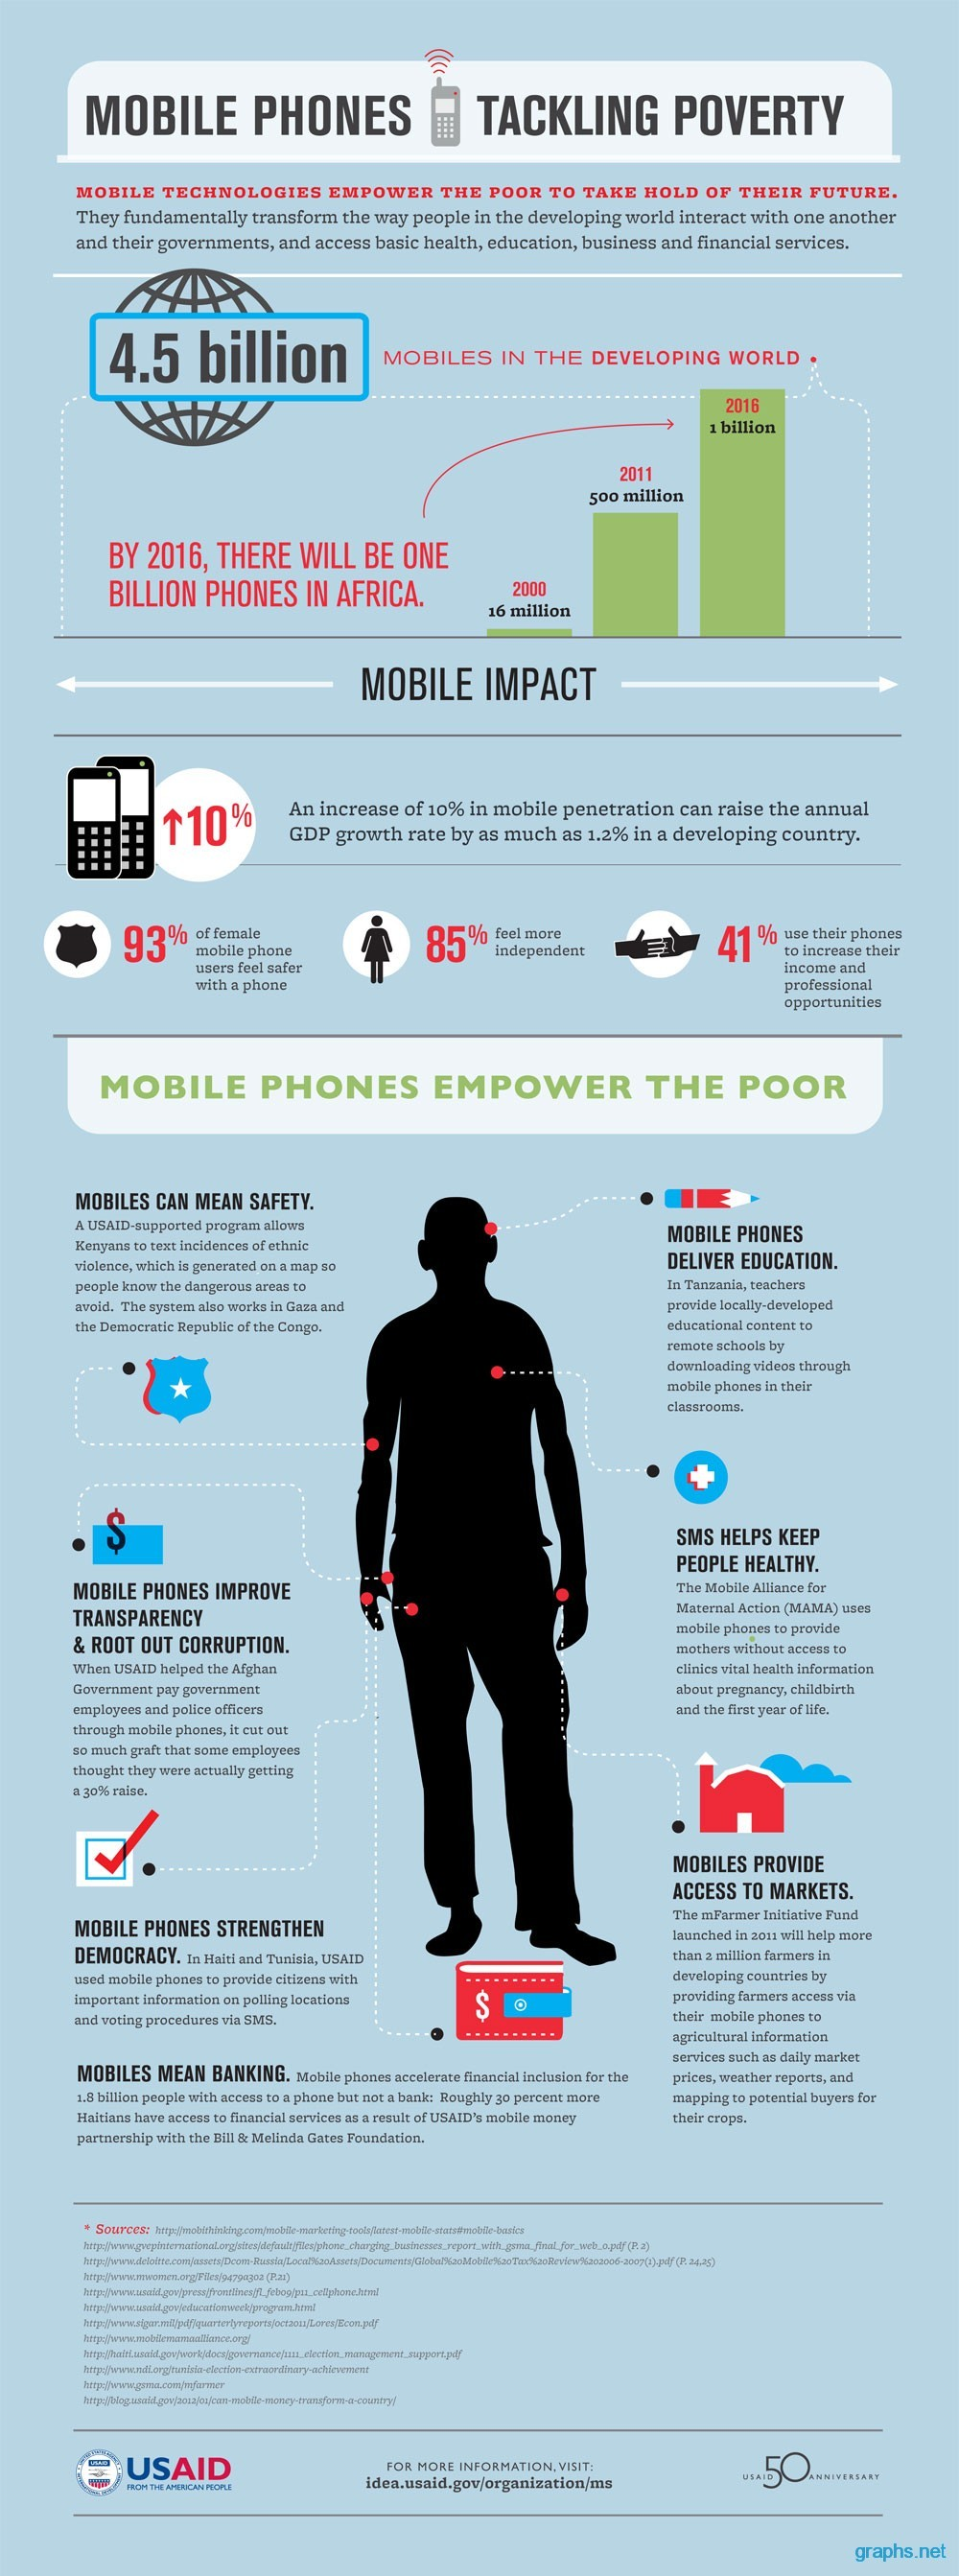 Benefits of Mobile Phone Use